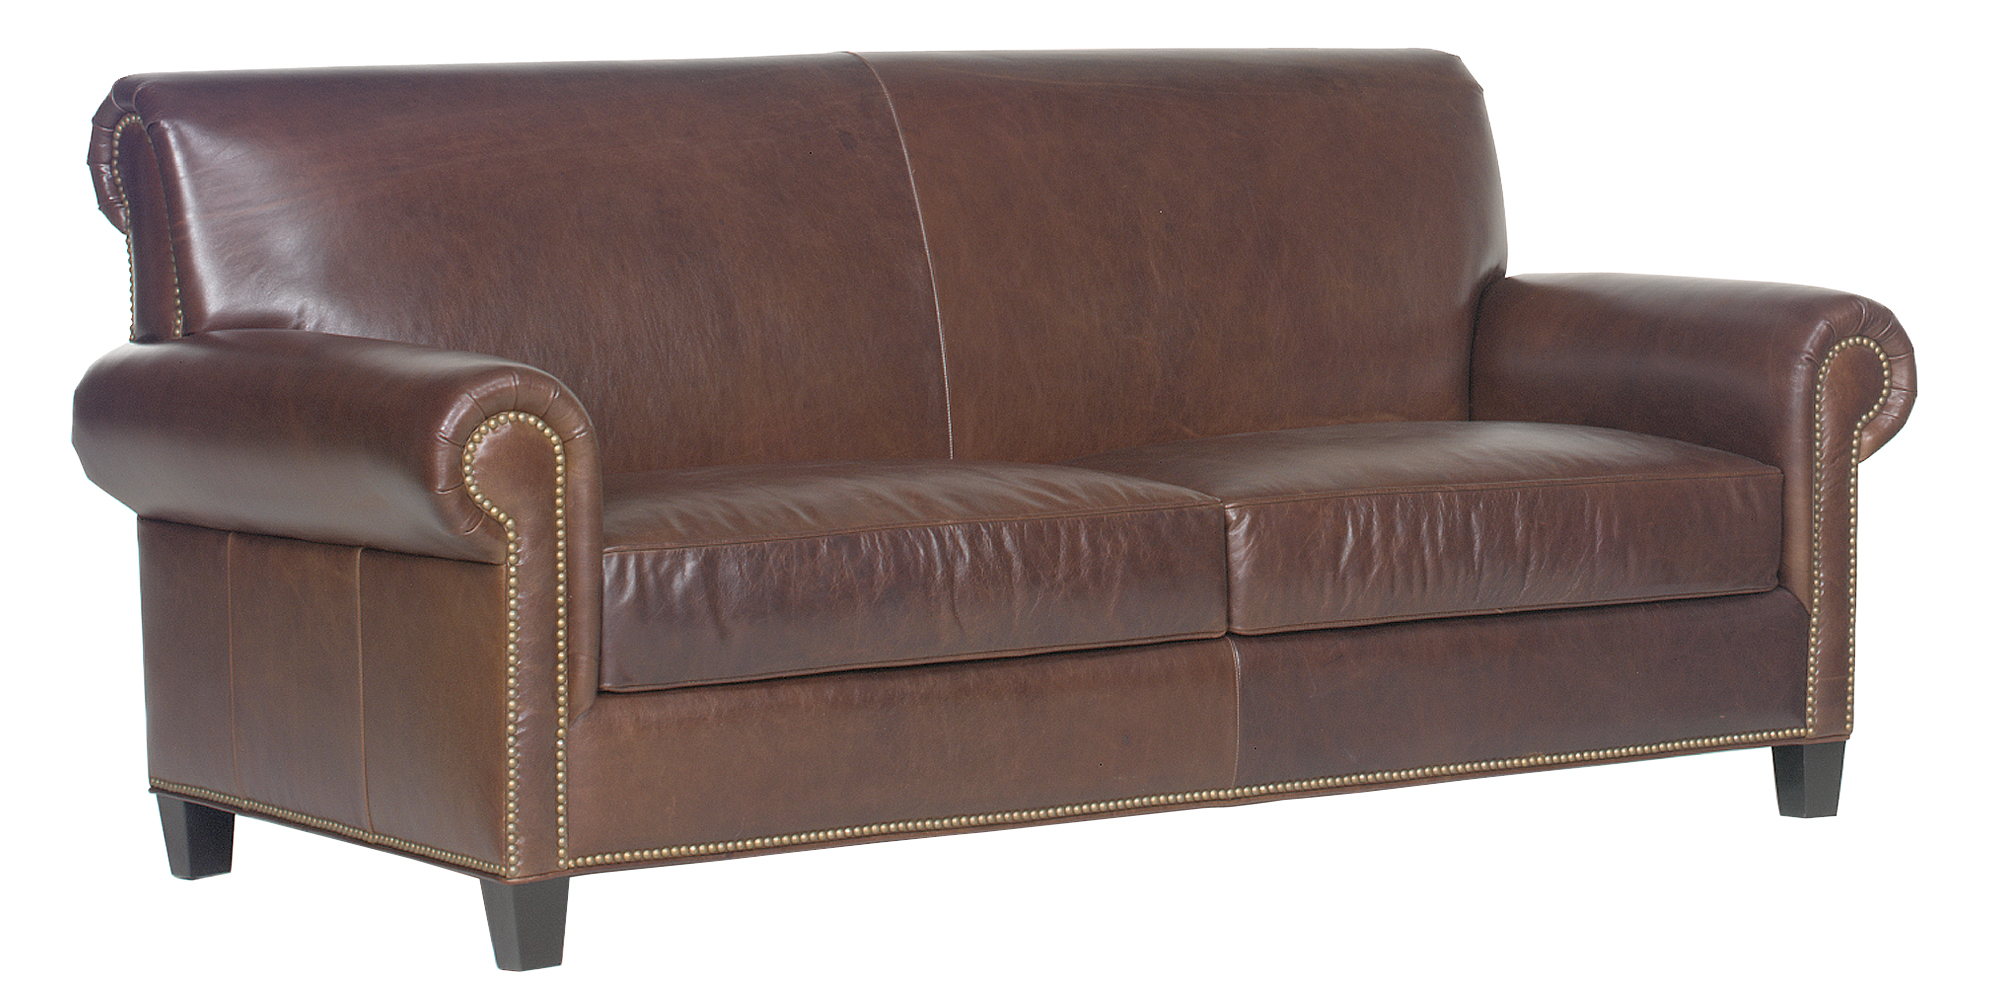 Traditional tight back leather sofa loveseat collection for Traditional leather furniture